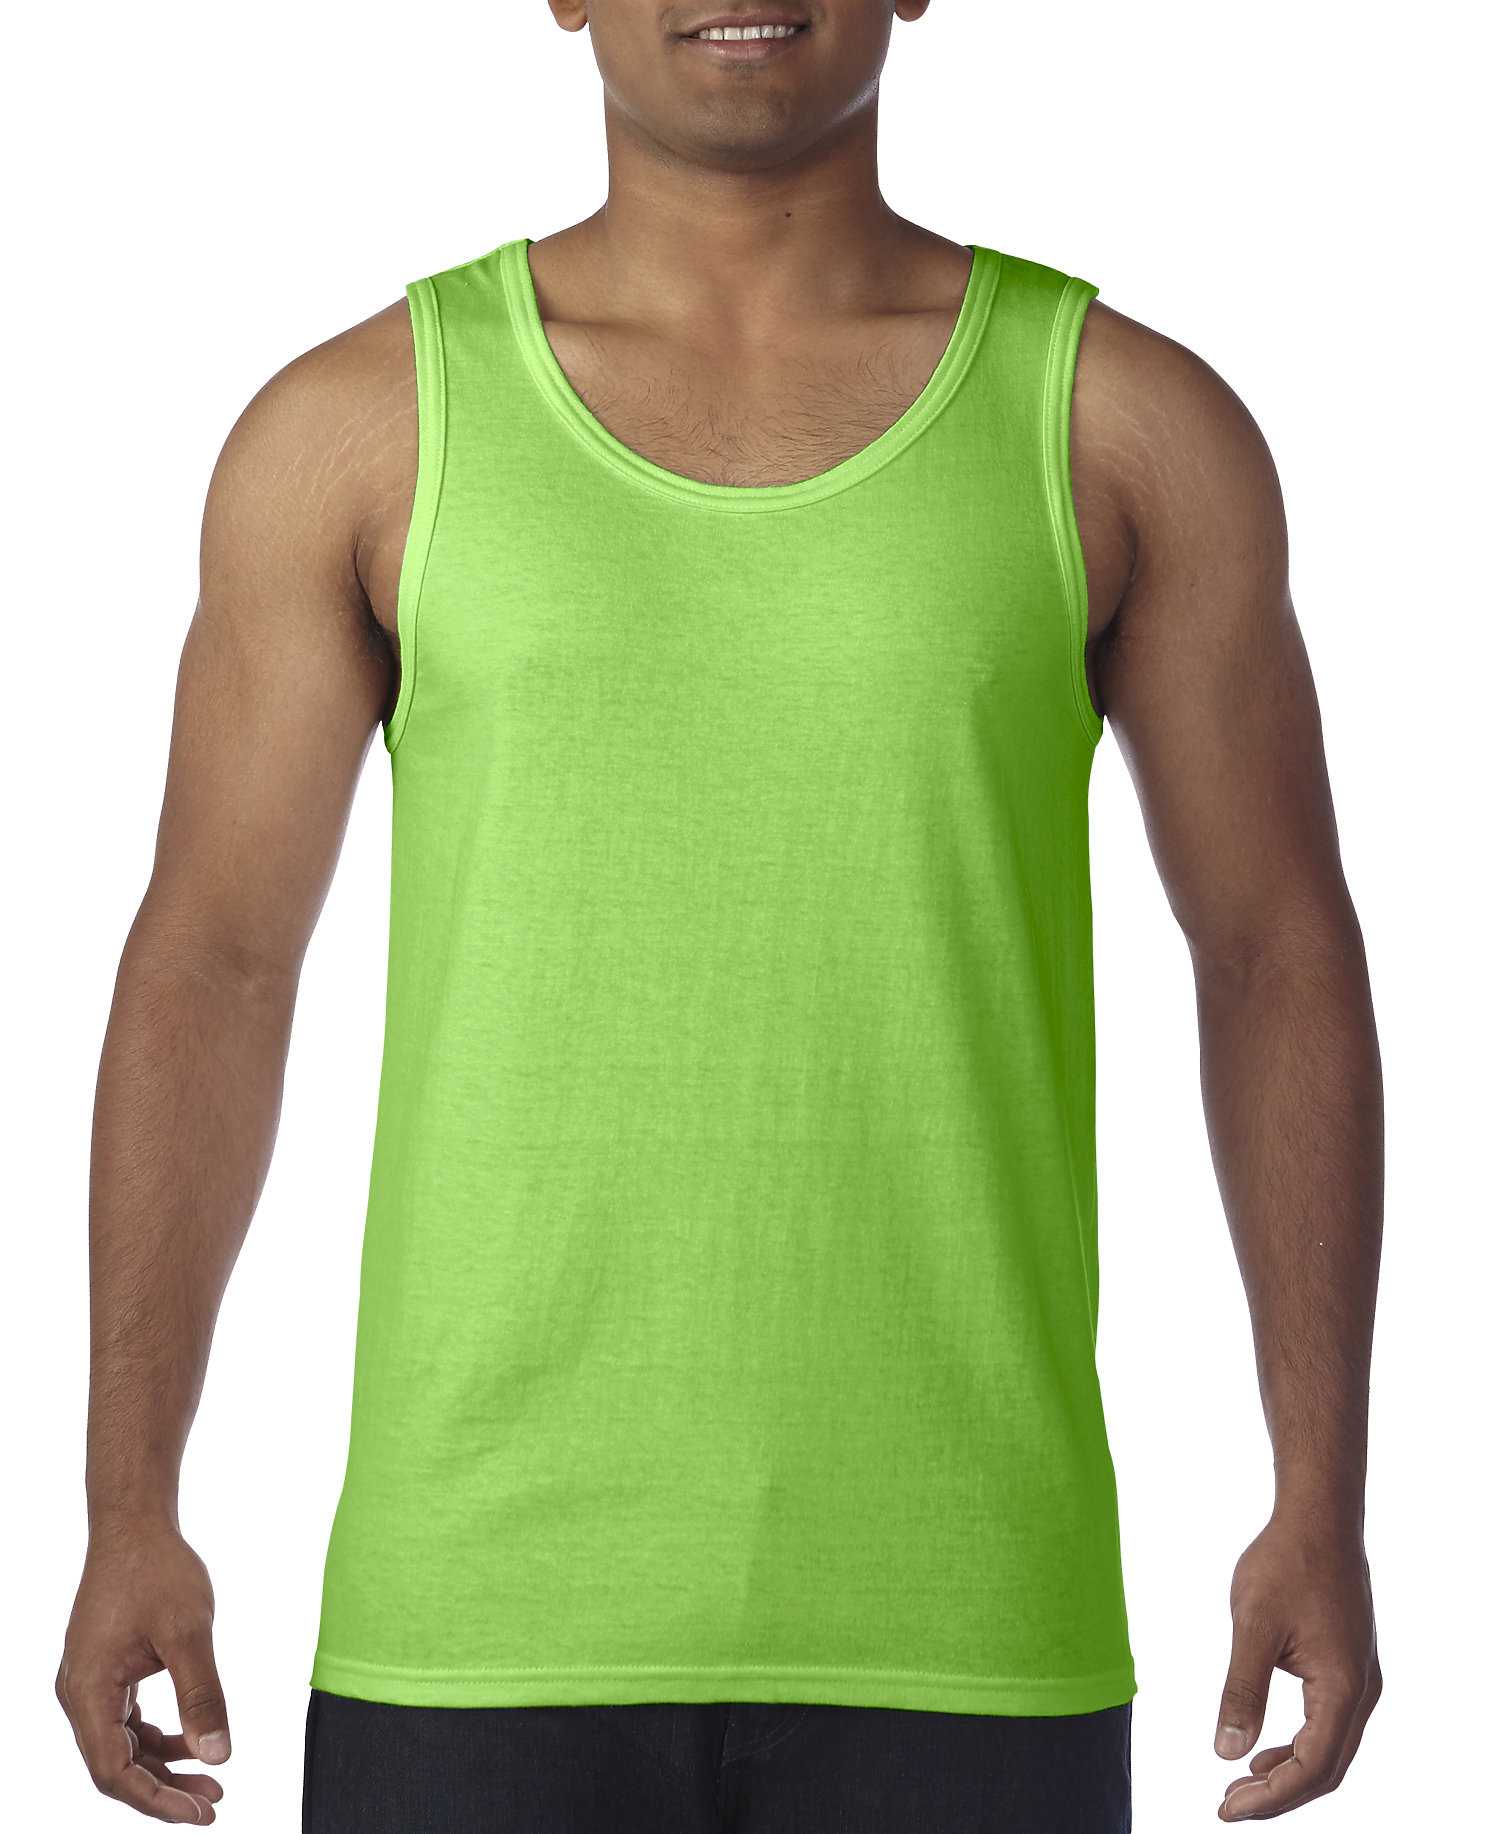 d264ba3a54 Gildan 5200 - Heavy Cotton Tank Top | Needen USA